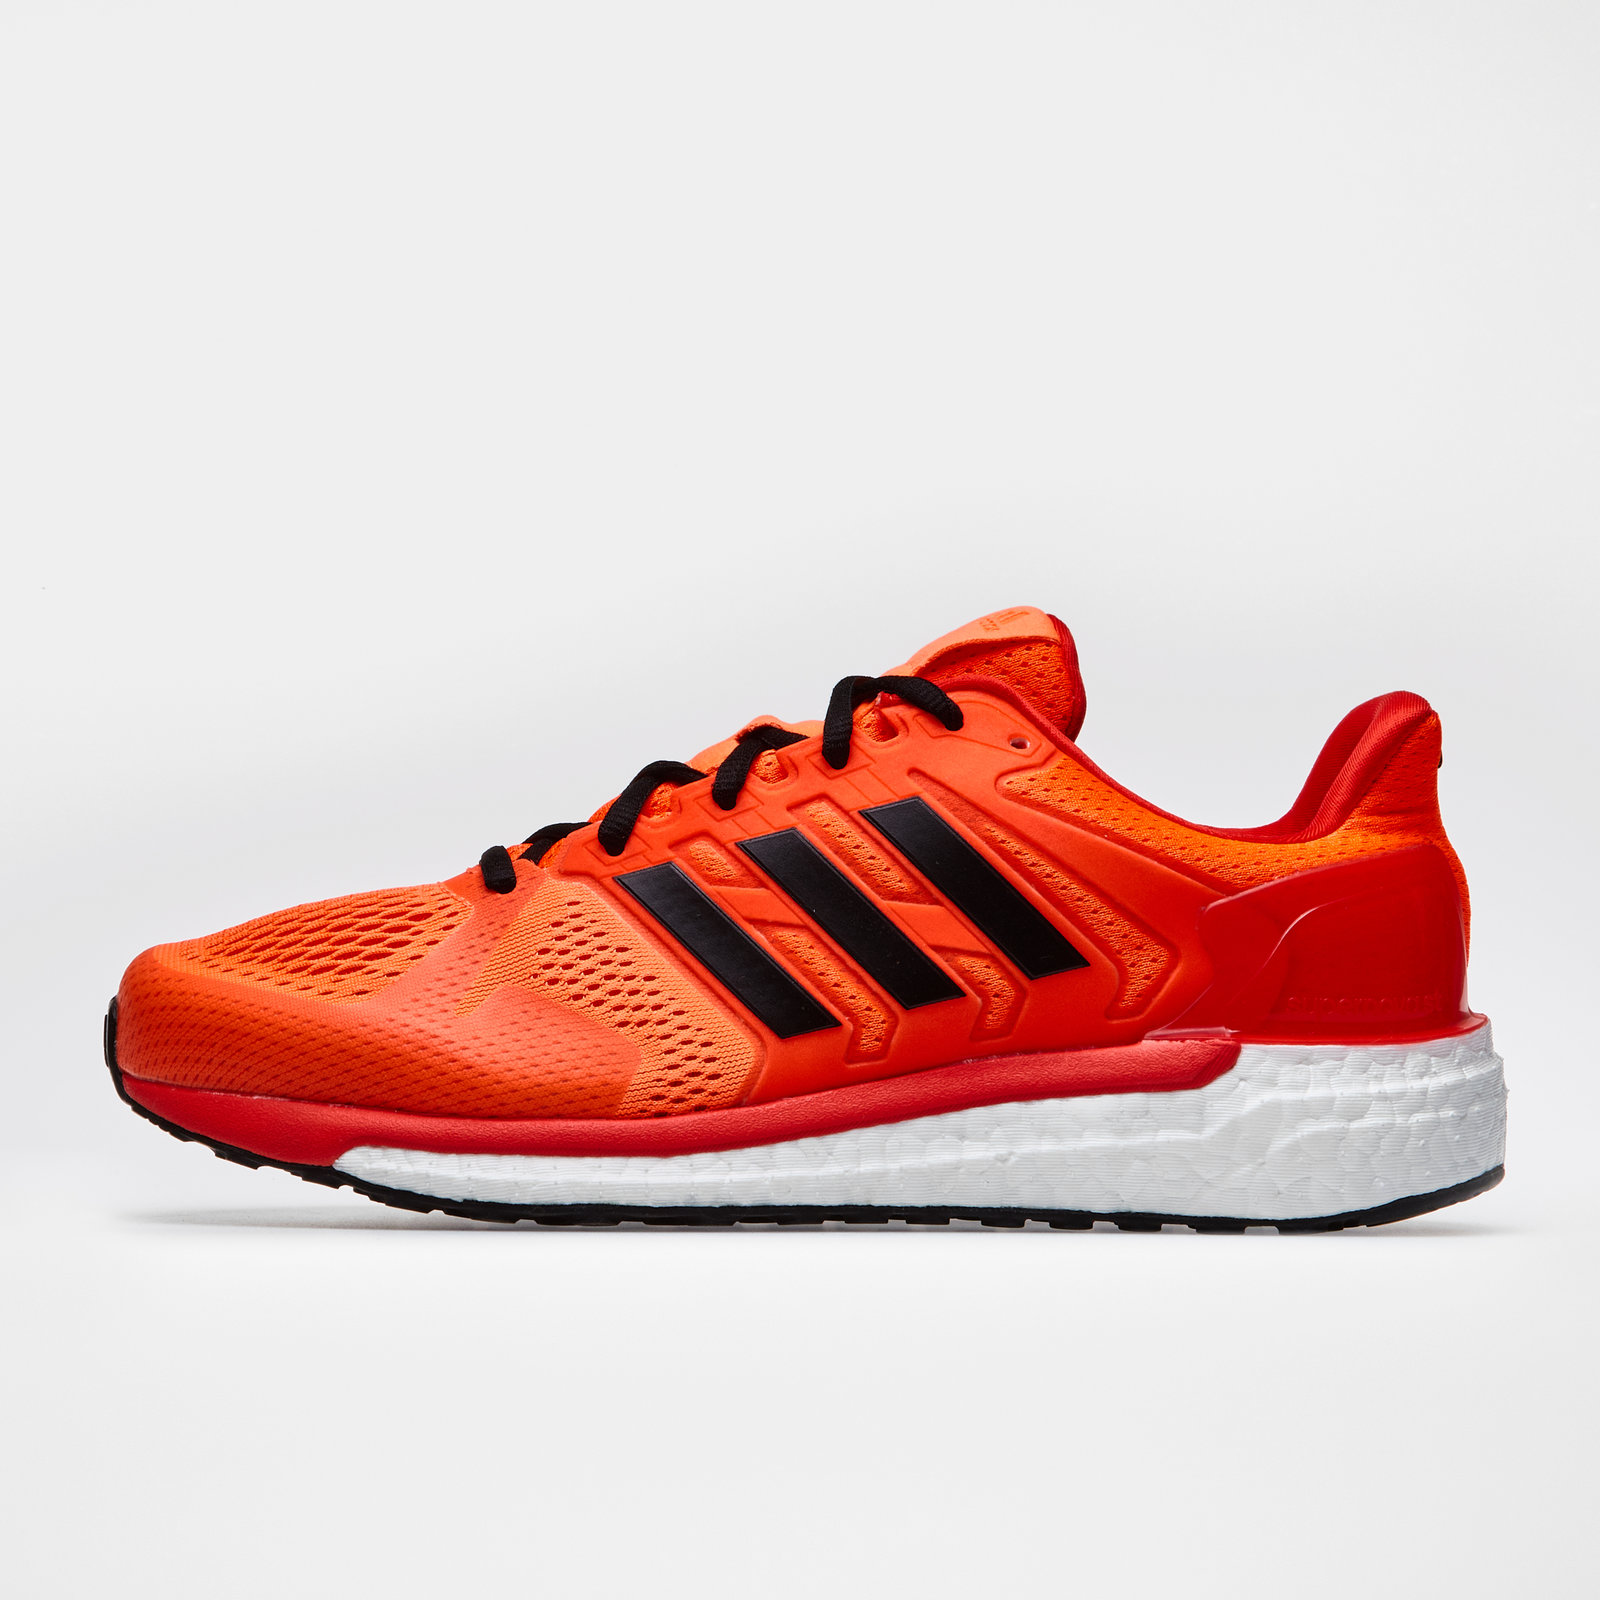 c26c1d20f6b16 adidas Mens Supernova ST Running Shoes Jogging Footwear Sports Trainers  Orange